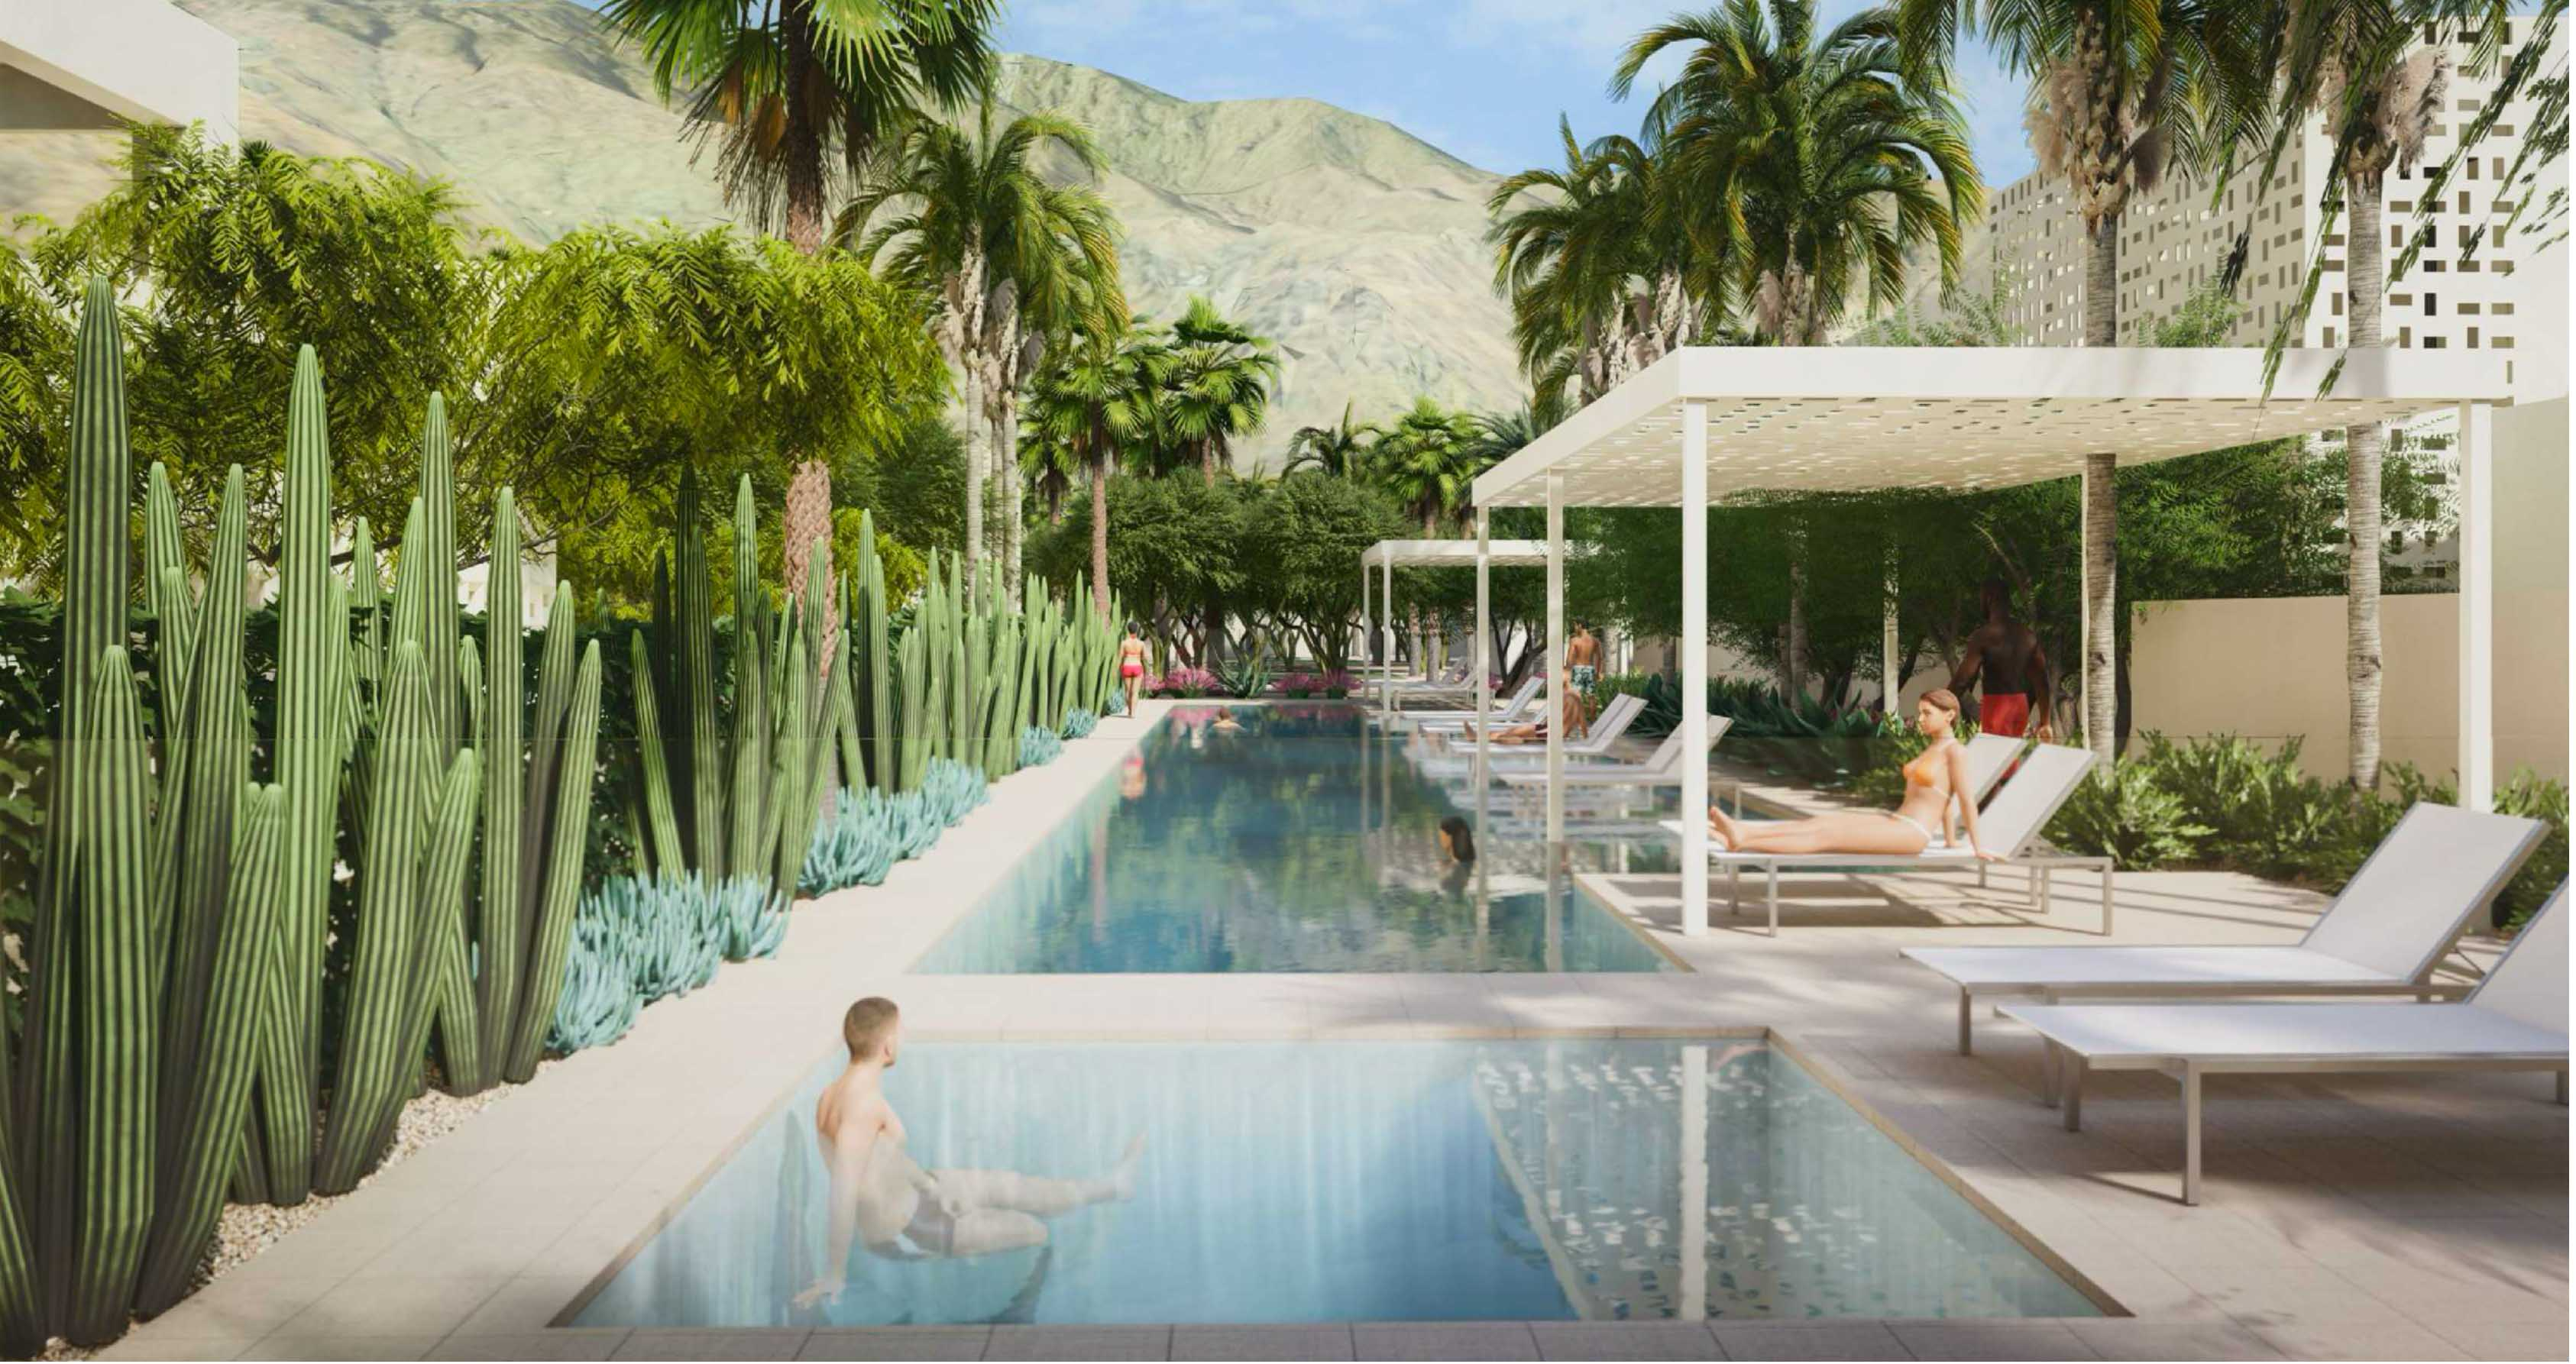 People lounging by the pool surrounded by nature with a view of the mountains